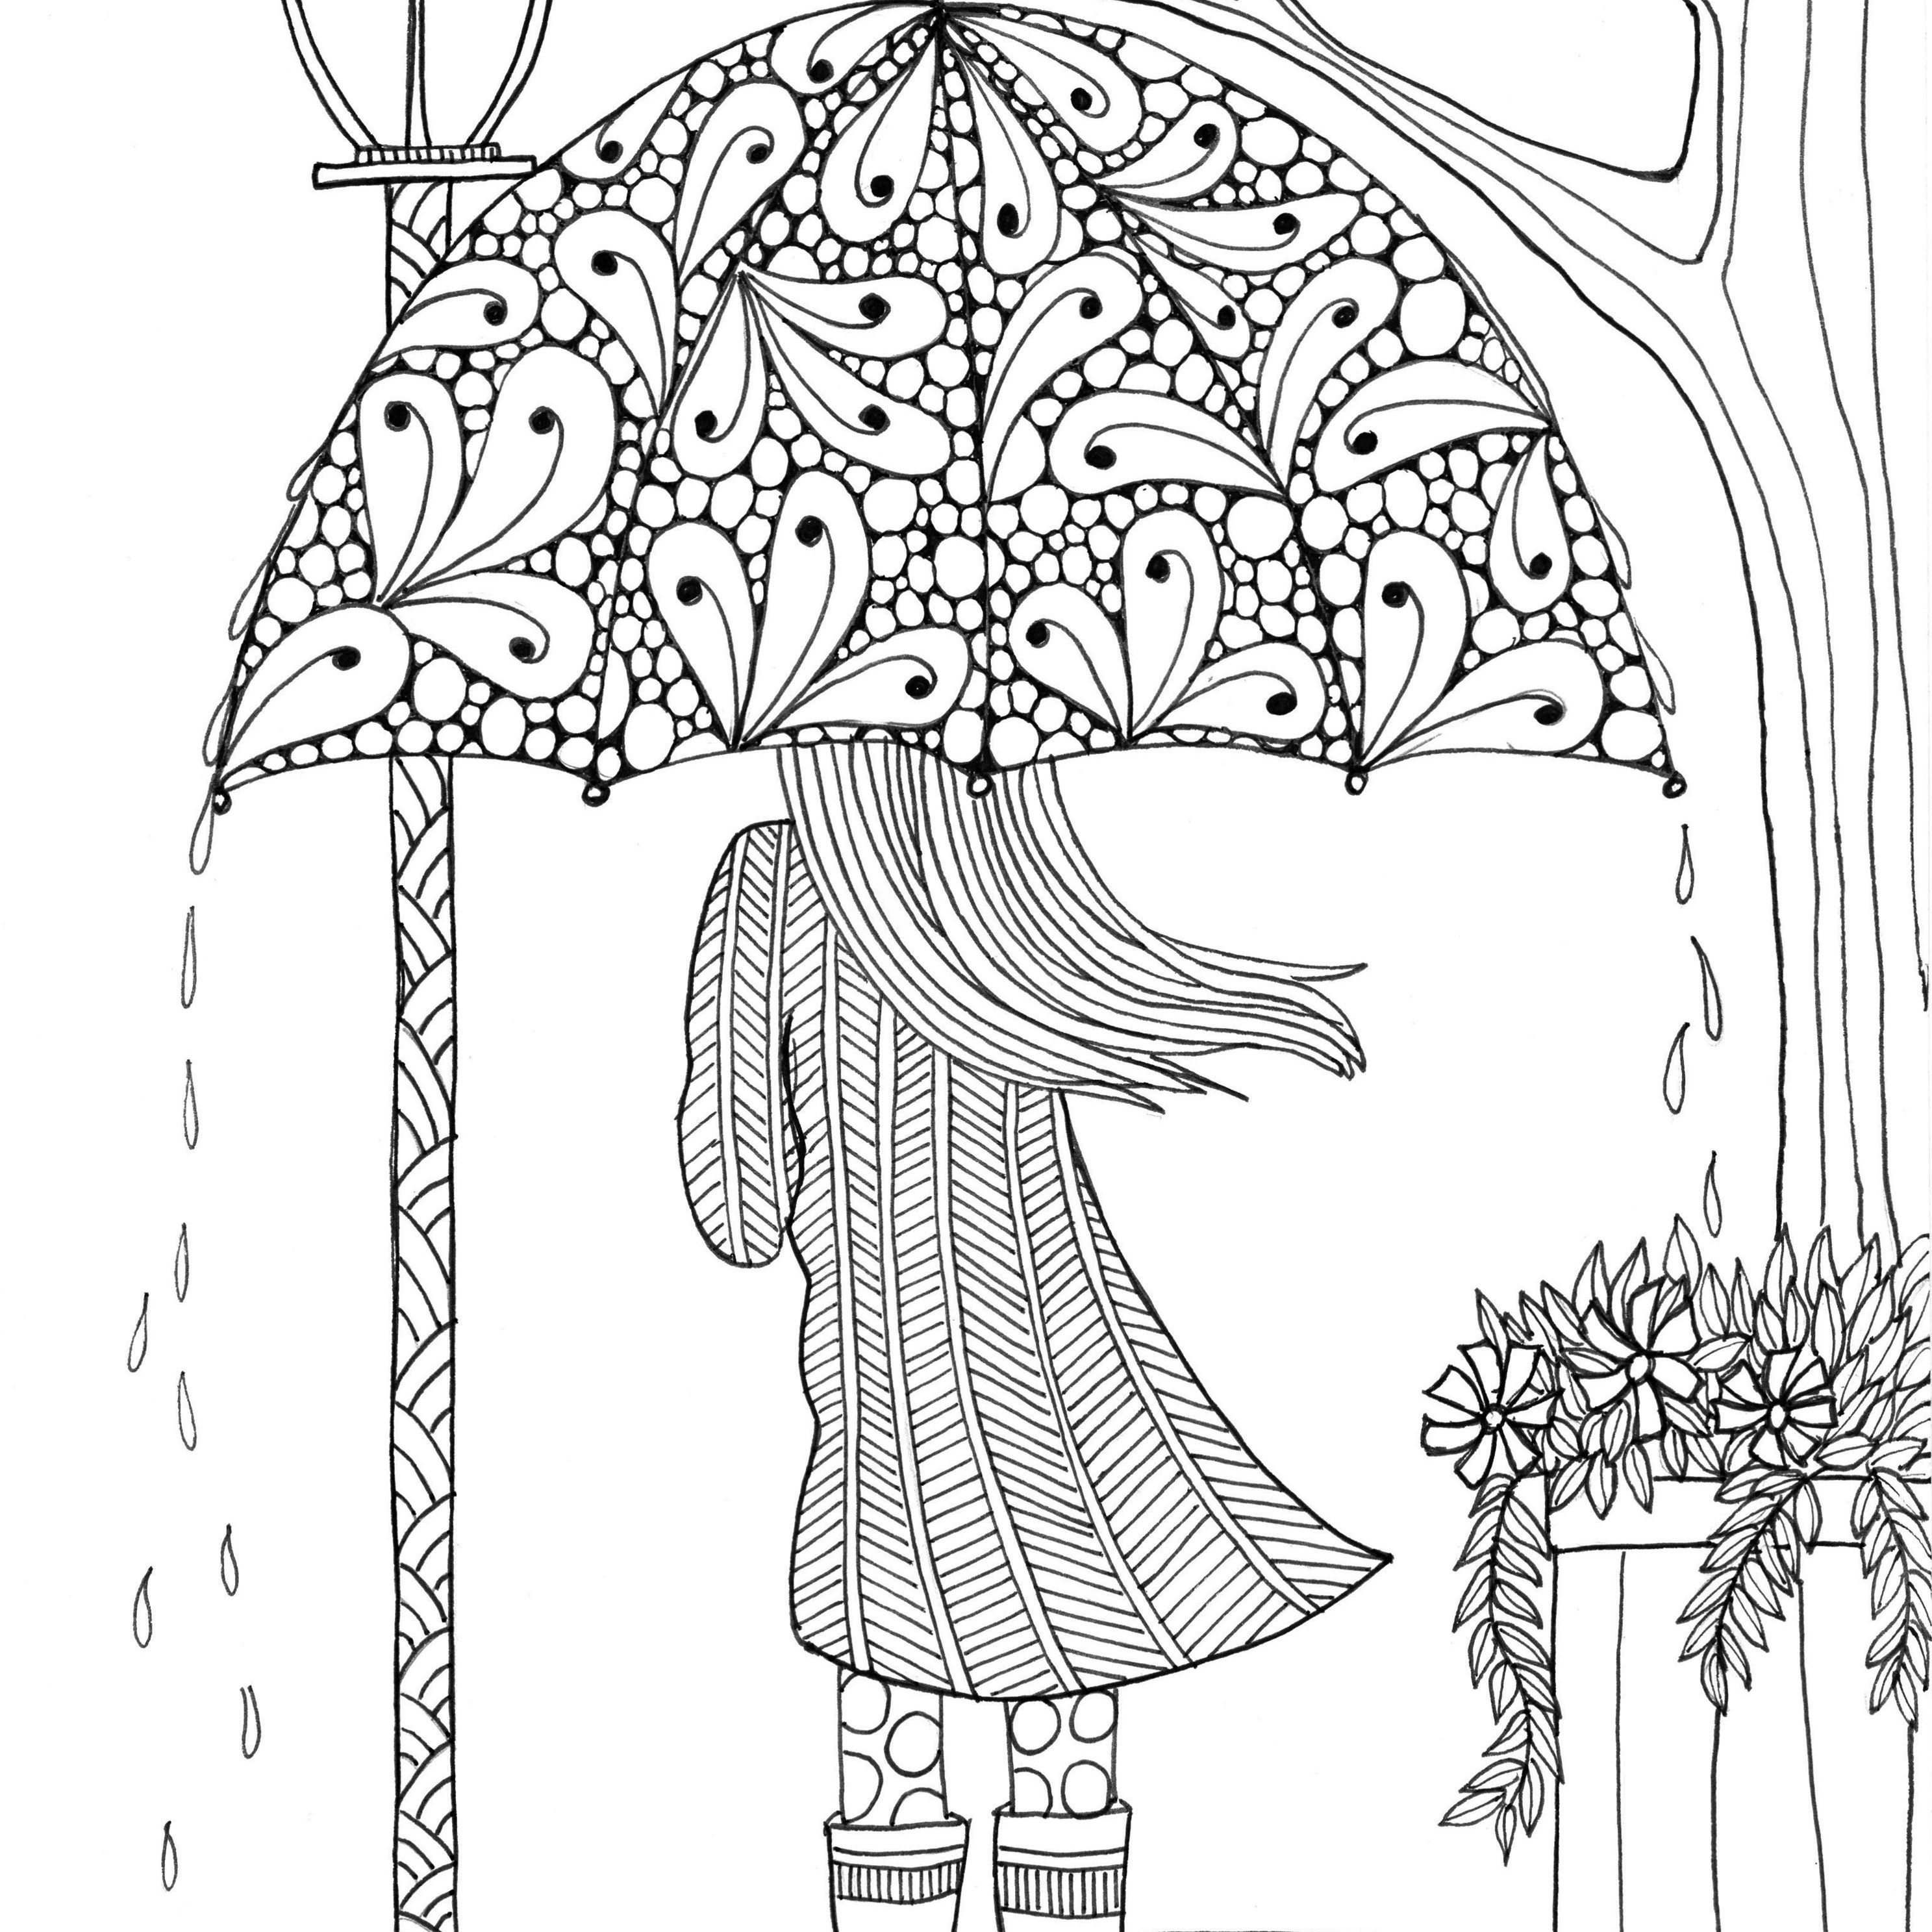 Free, Printable Coloring Pages For Adults - Free Printable Coloring Cards For Adults